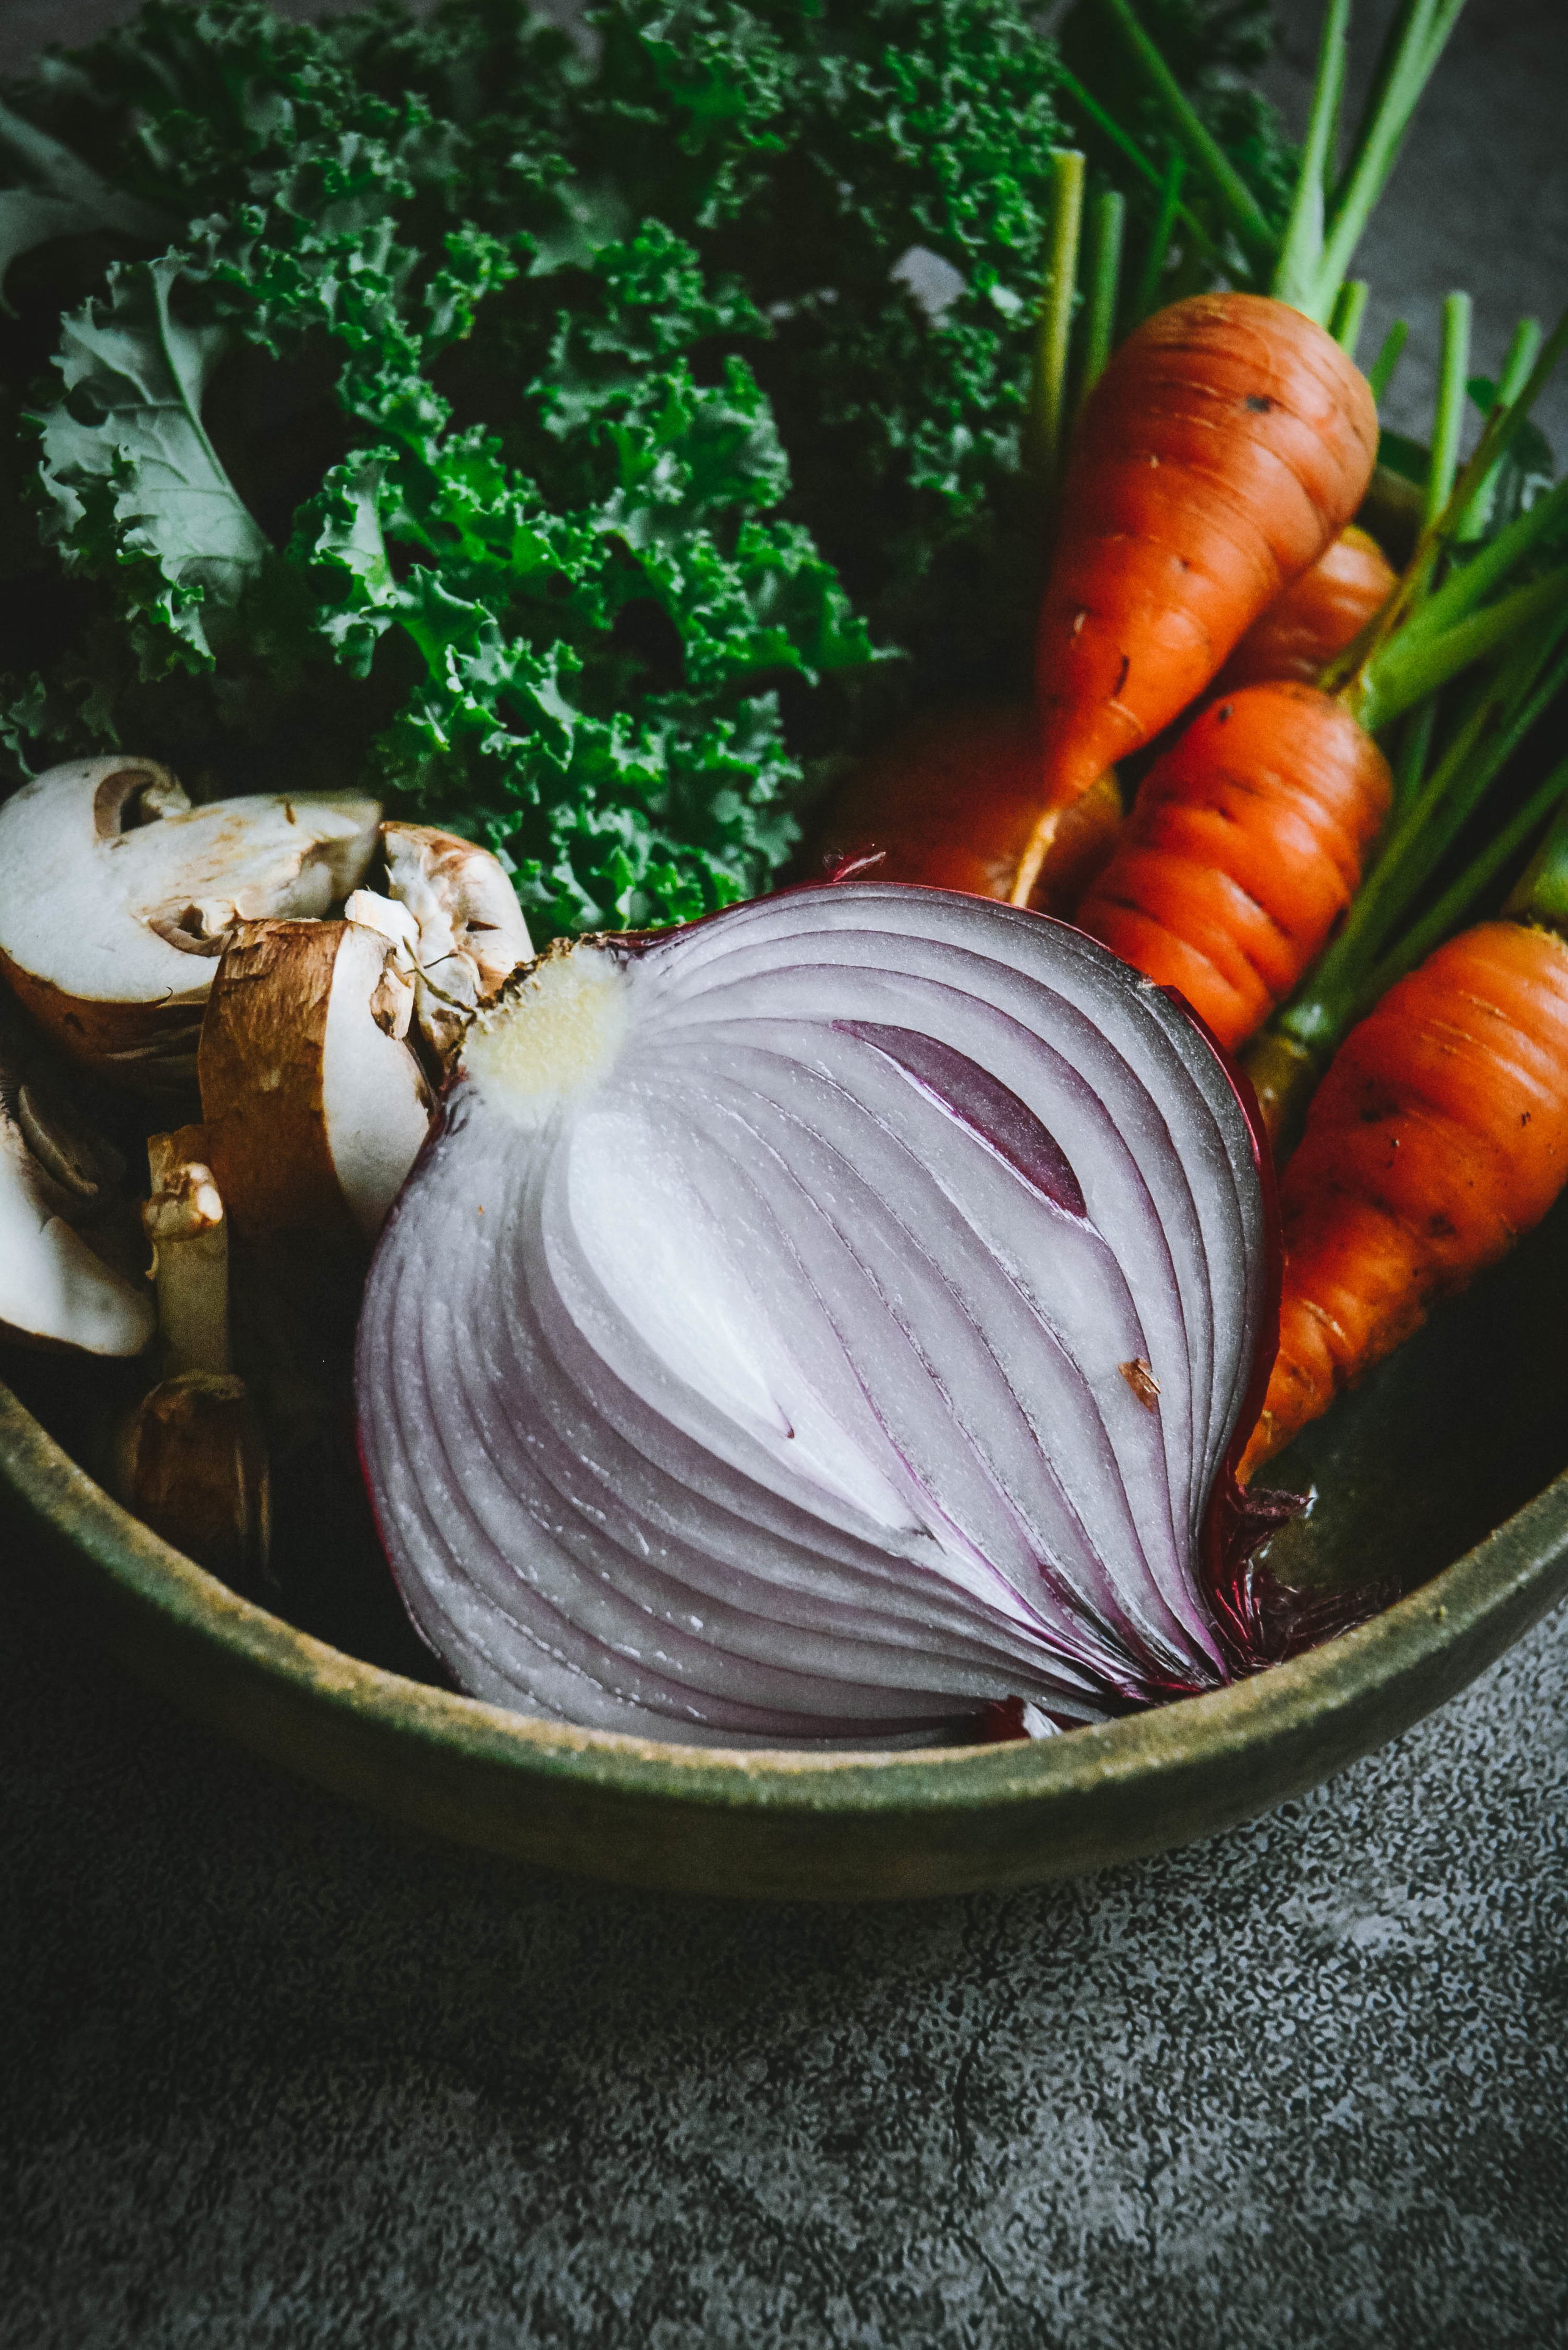 Red onion, carrots and kale in bowl